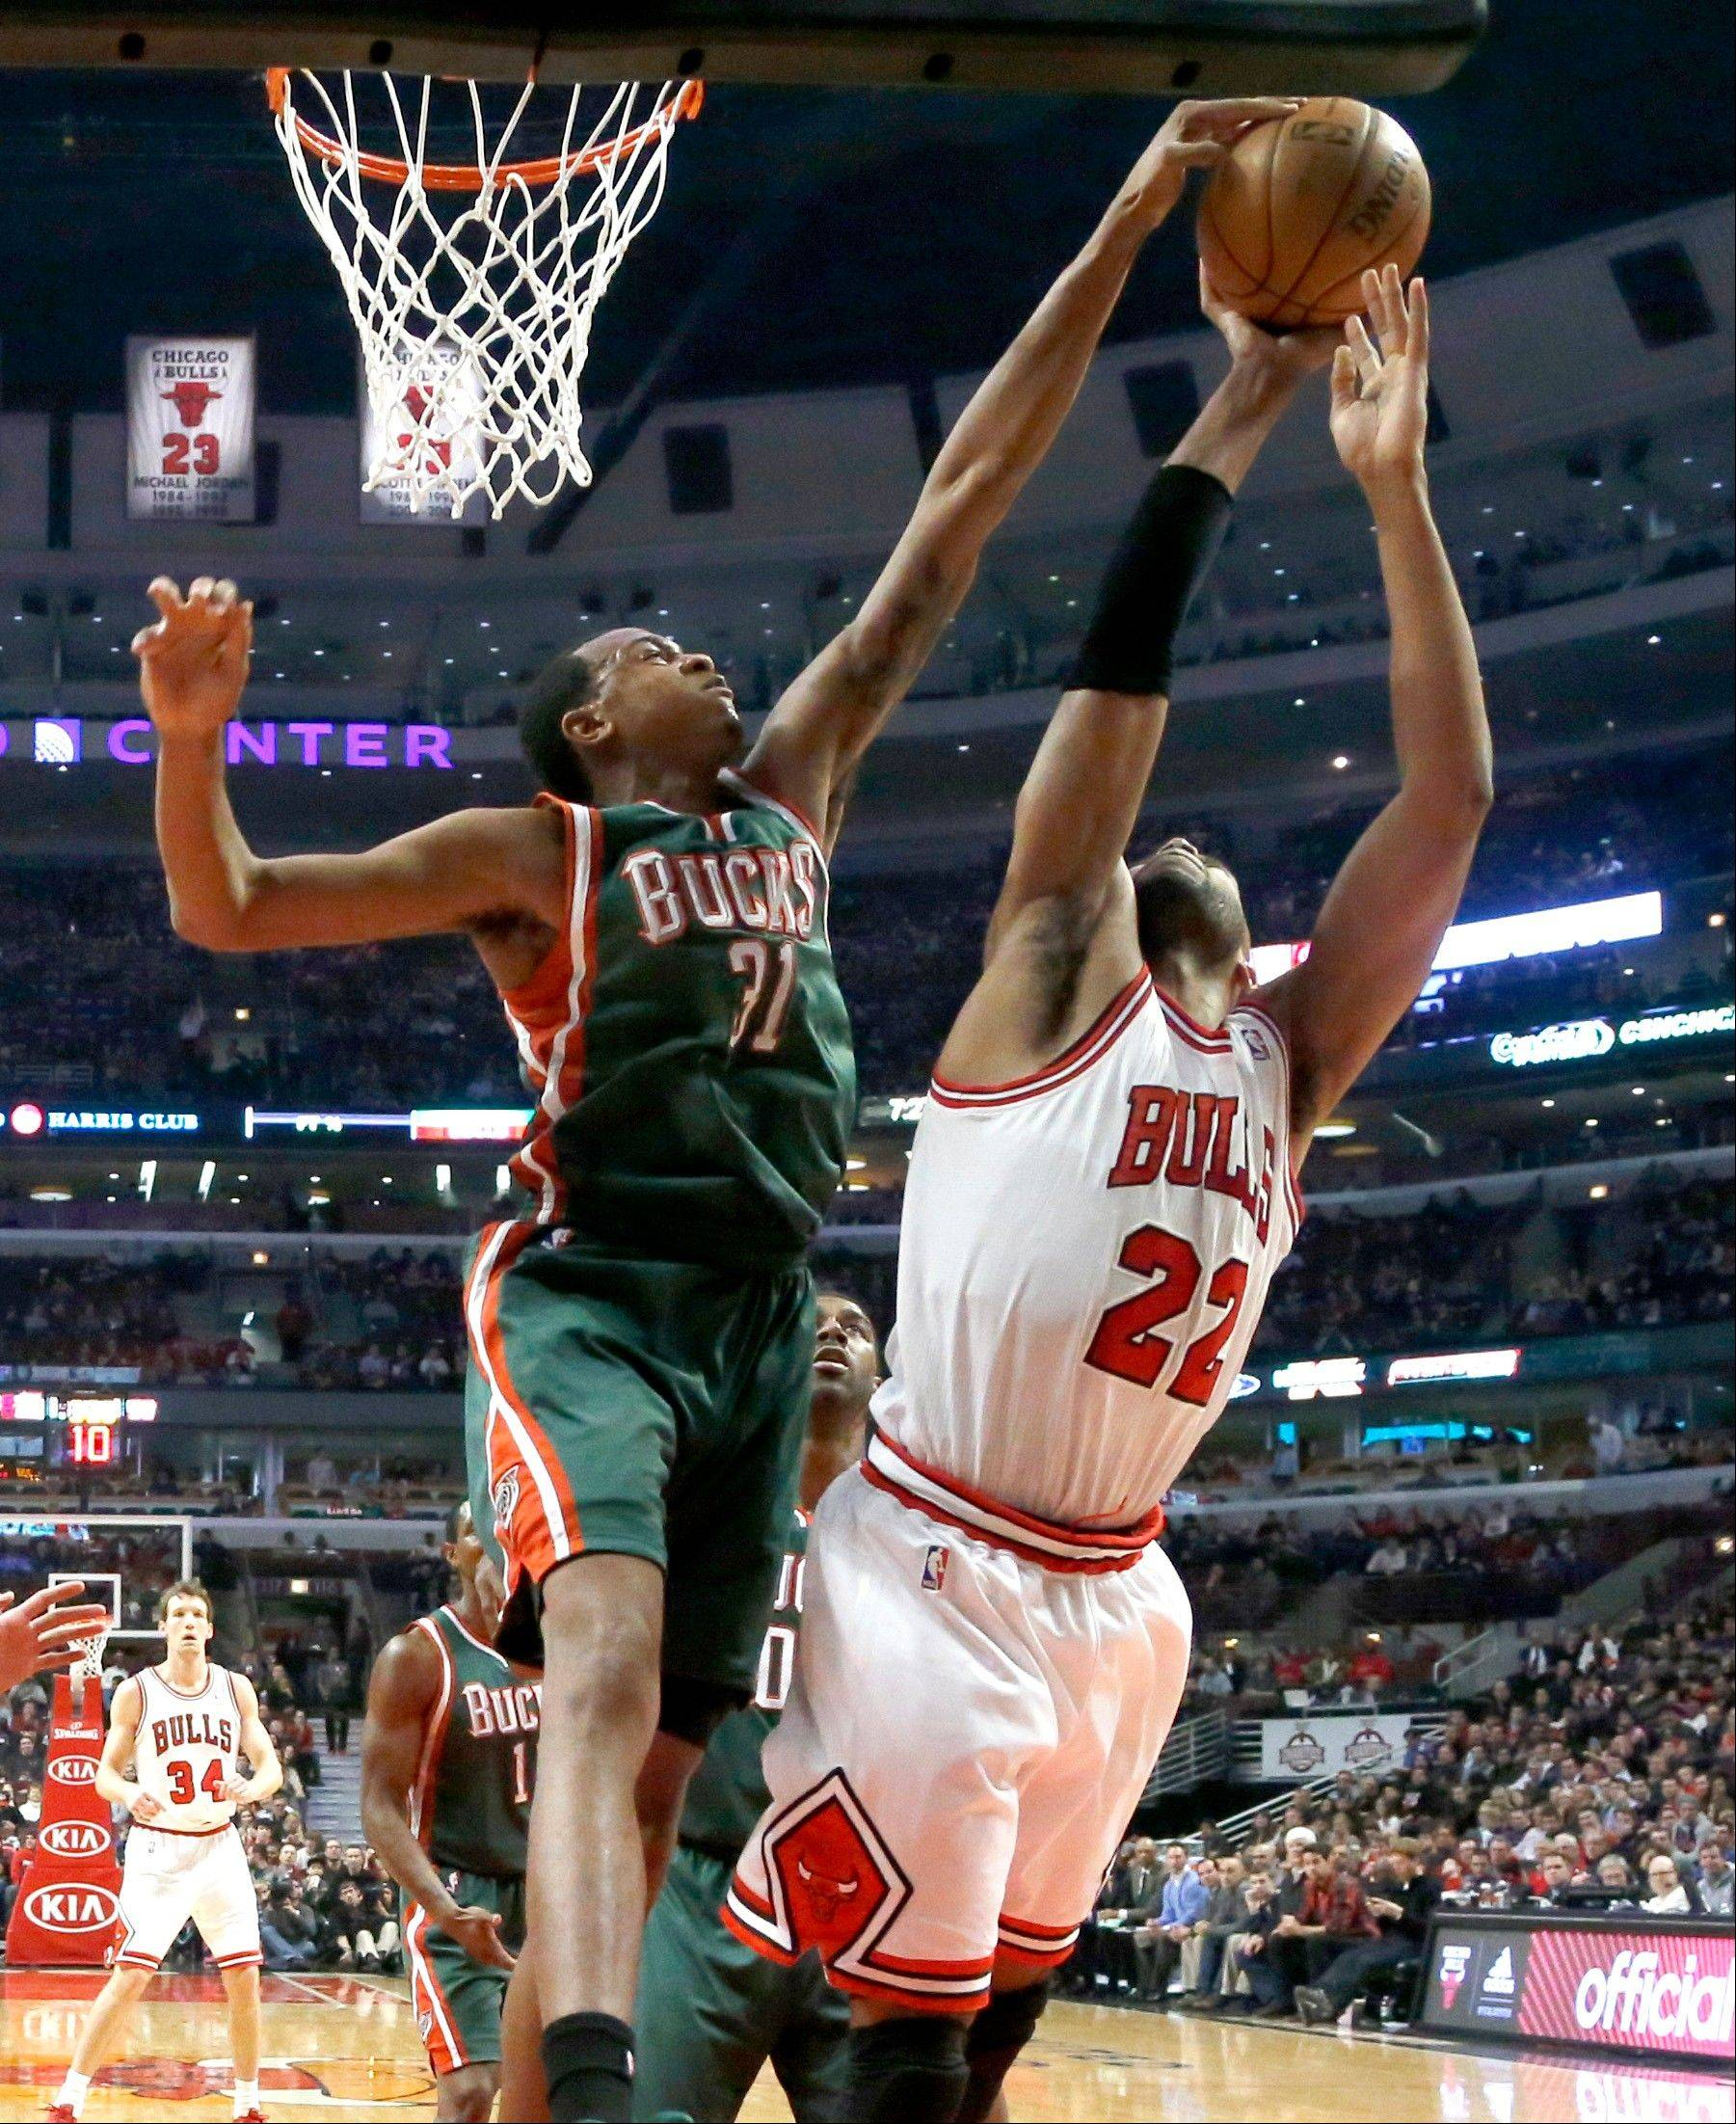 Milwaukee Bucks forward John Henson (31) blocks the shot of Chicago Bulls forward Taj Gibson (22) during the first half of an NBA basketball game Tuesday, Dec. 10, 2013, in Chicago.